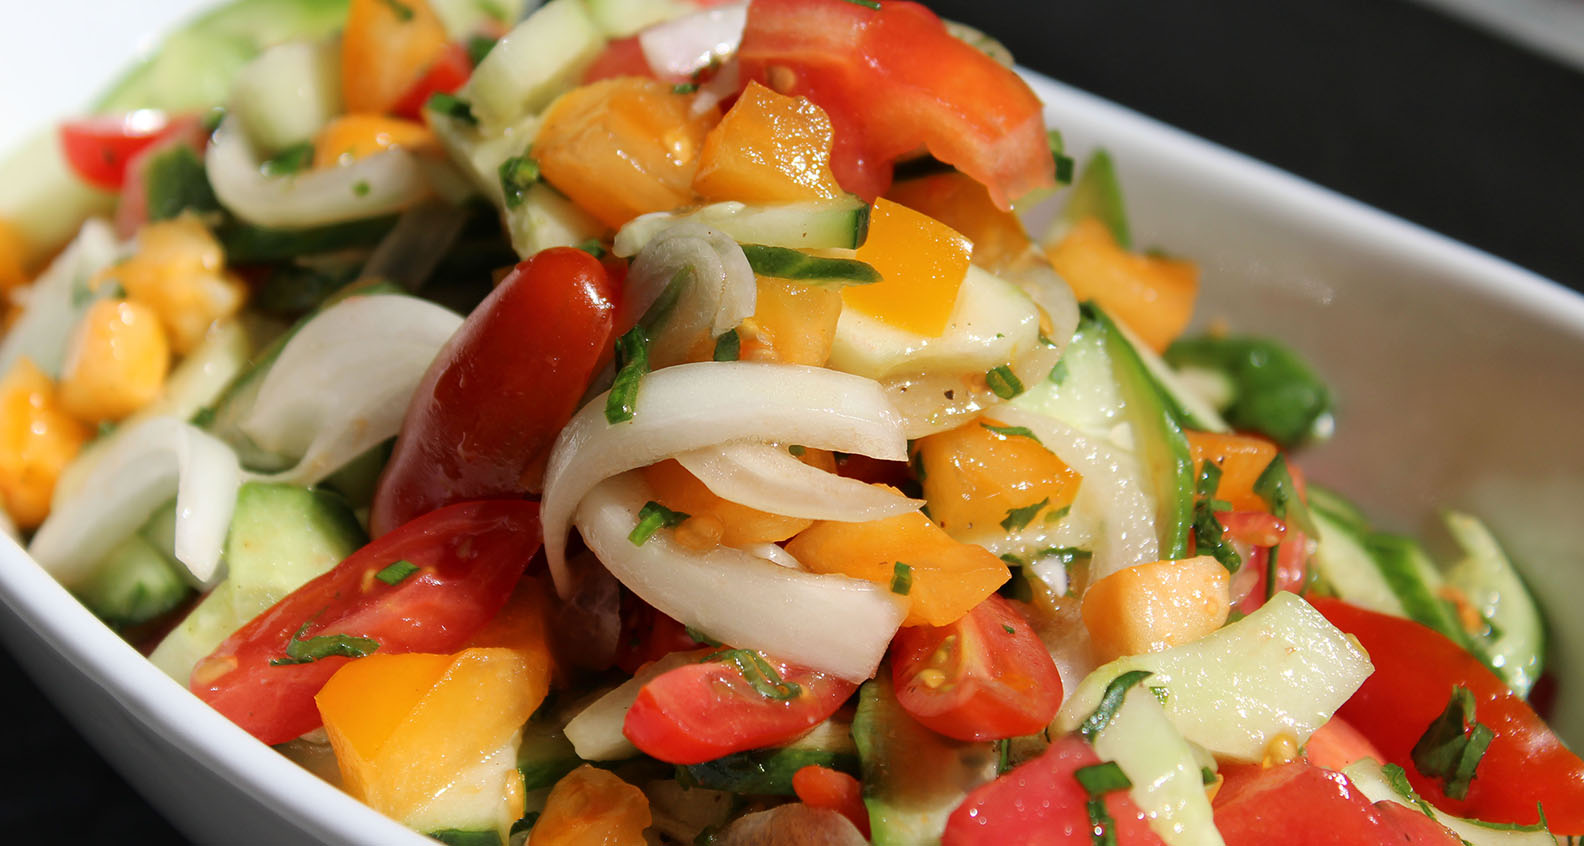 Southern Kitchen's Tomato and Cucumber Salad